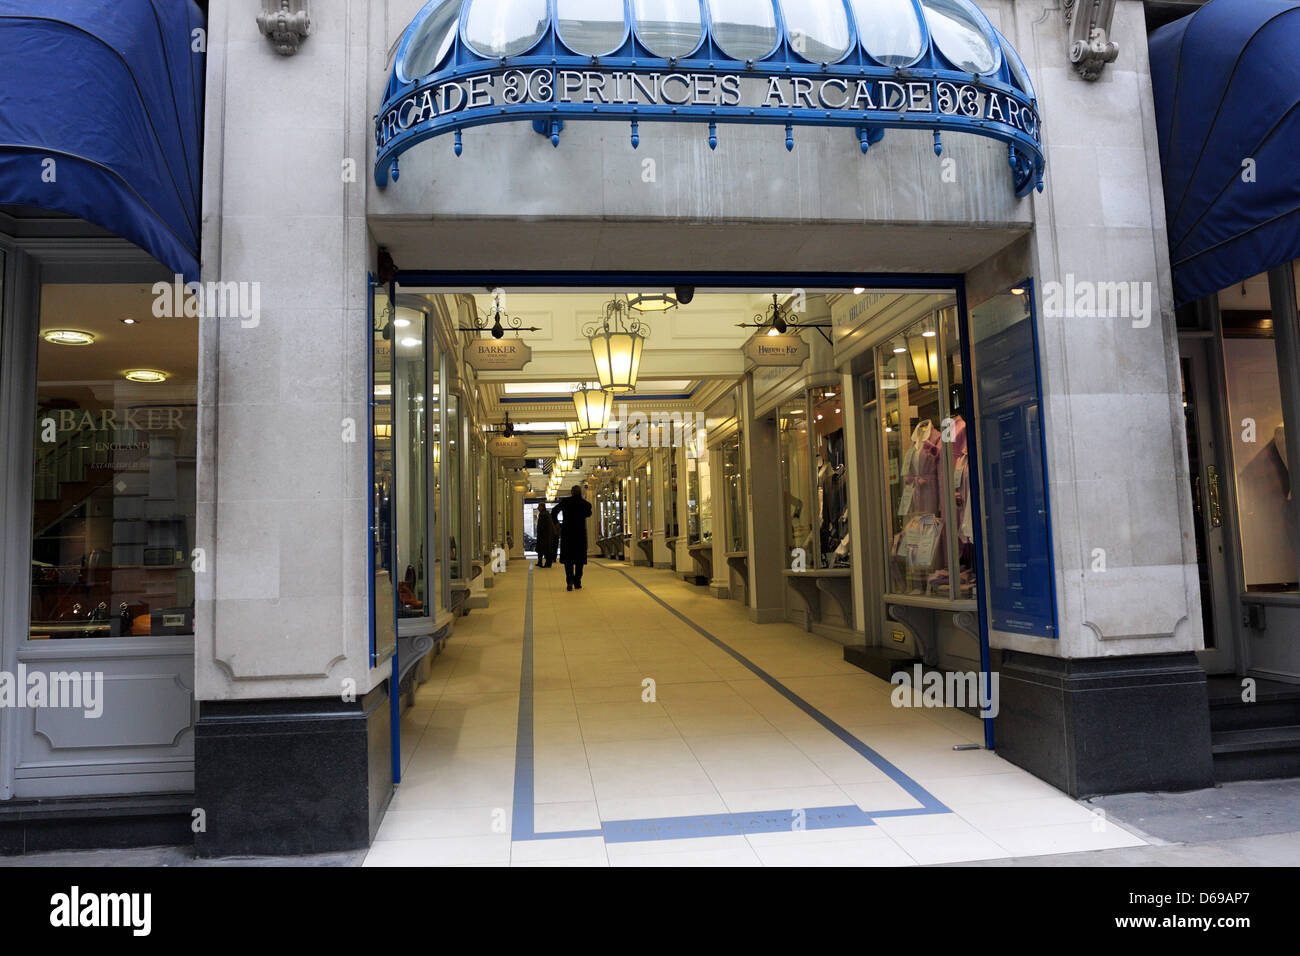 High end retail in what is Princes Arcade,situated and seen here from the Jermyn Street end of the arcade. - Stock Image